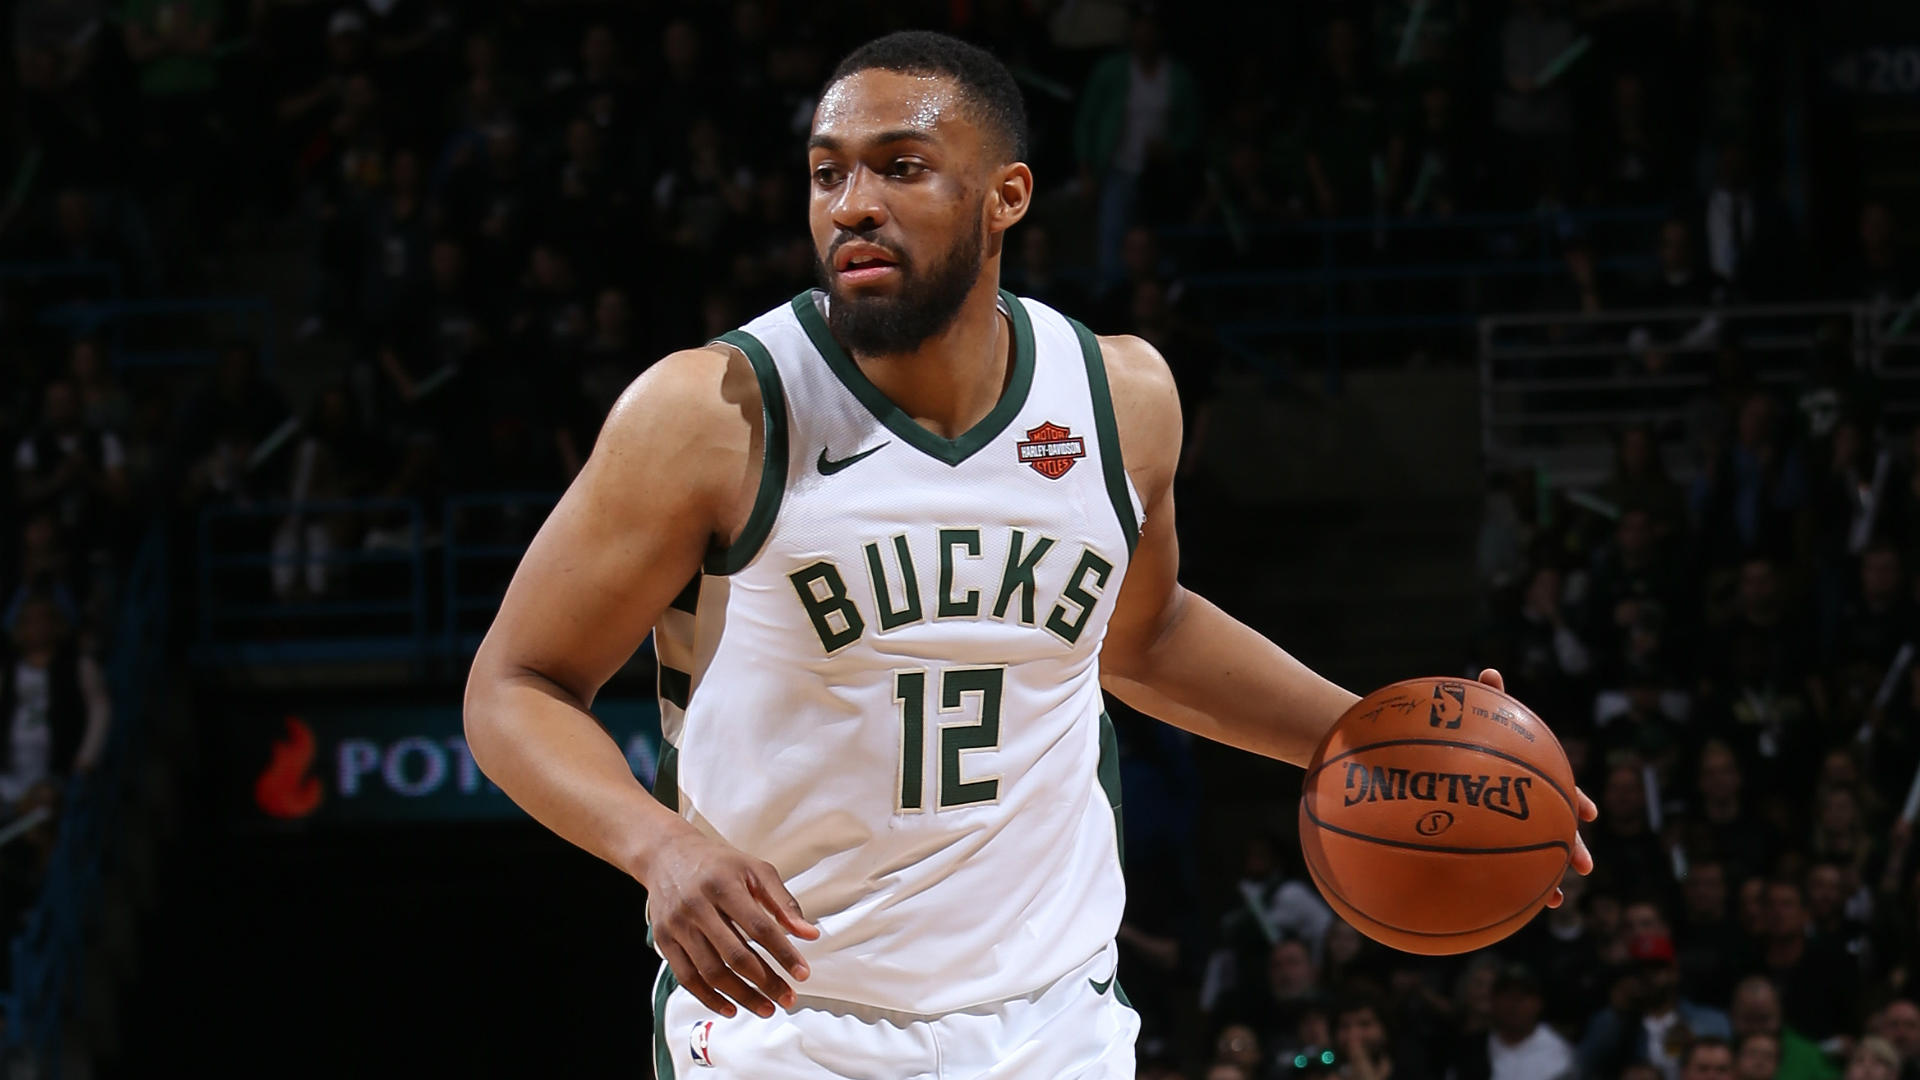 Bulls reportedly closing in on deal with Jabari Parker